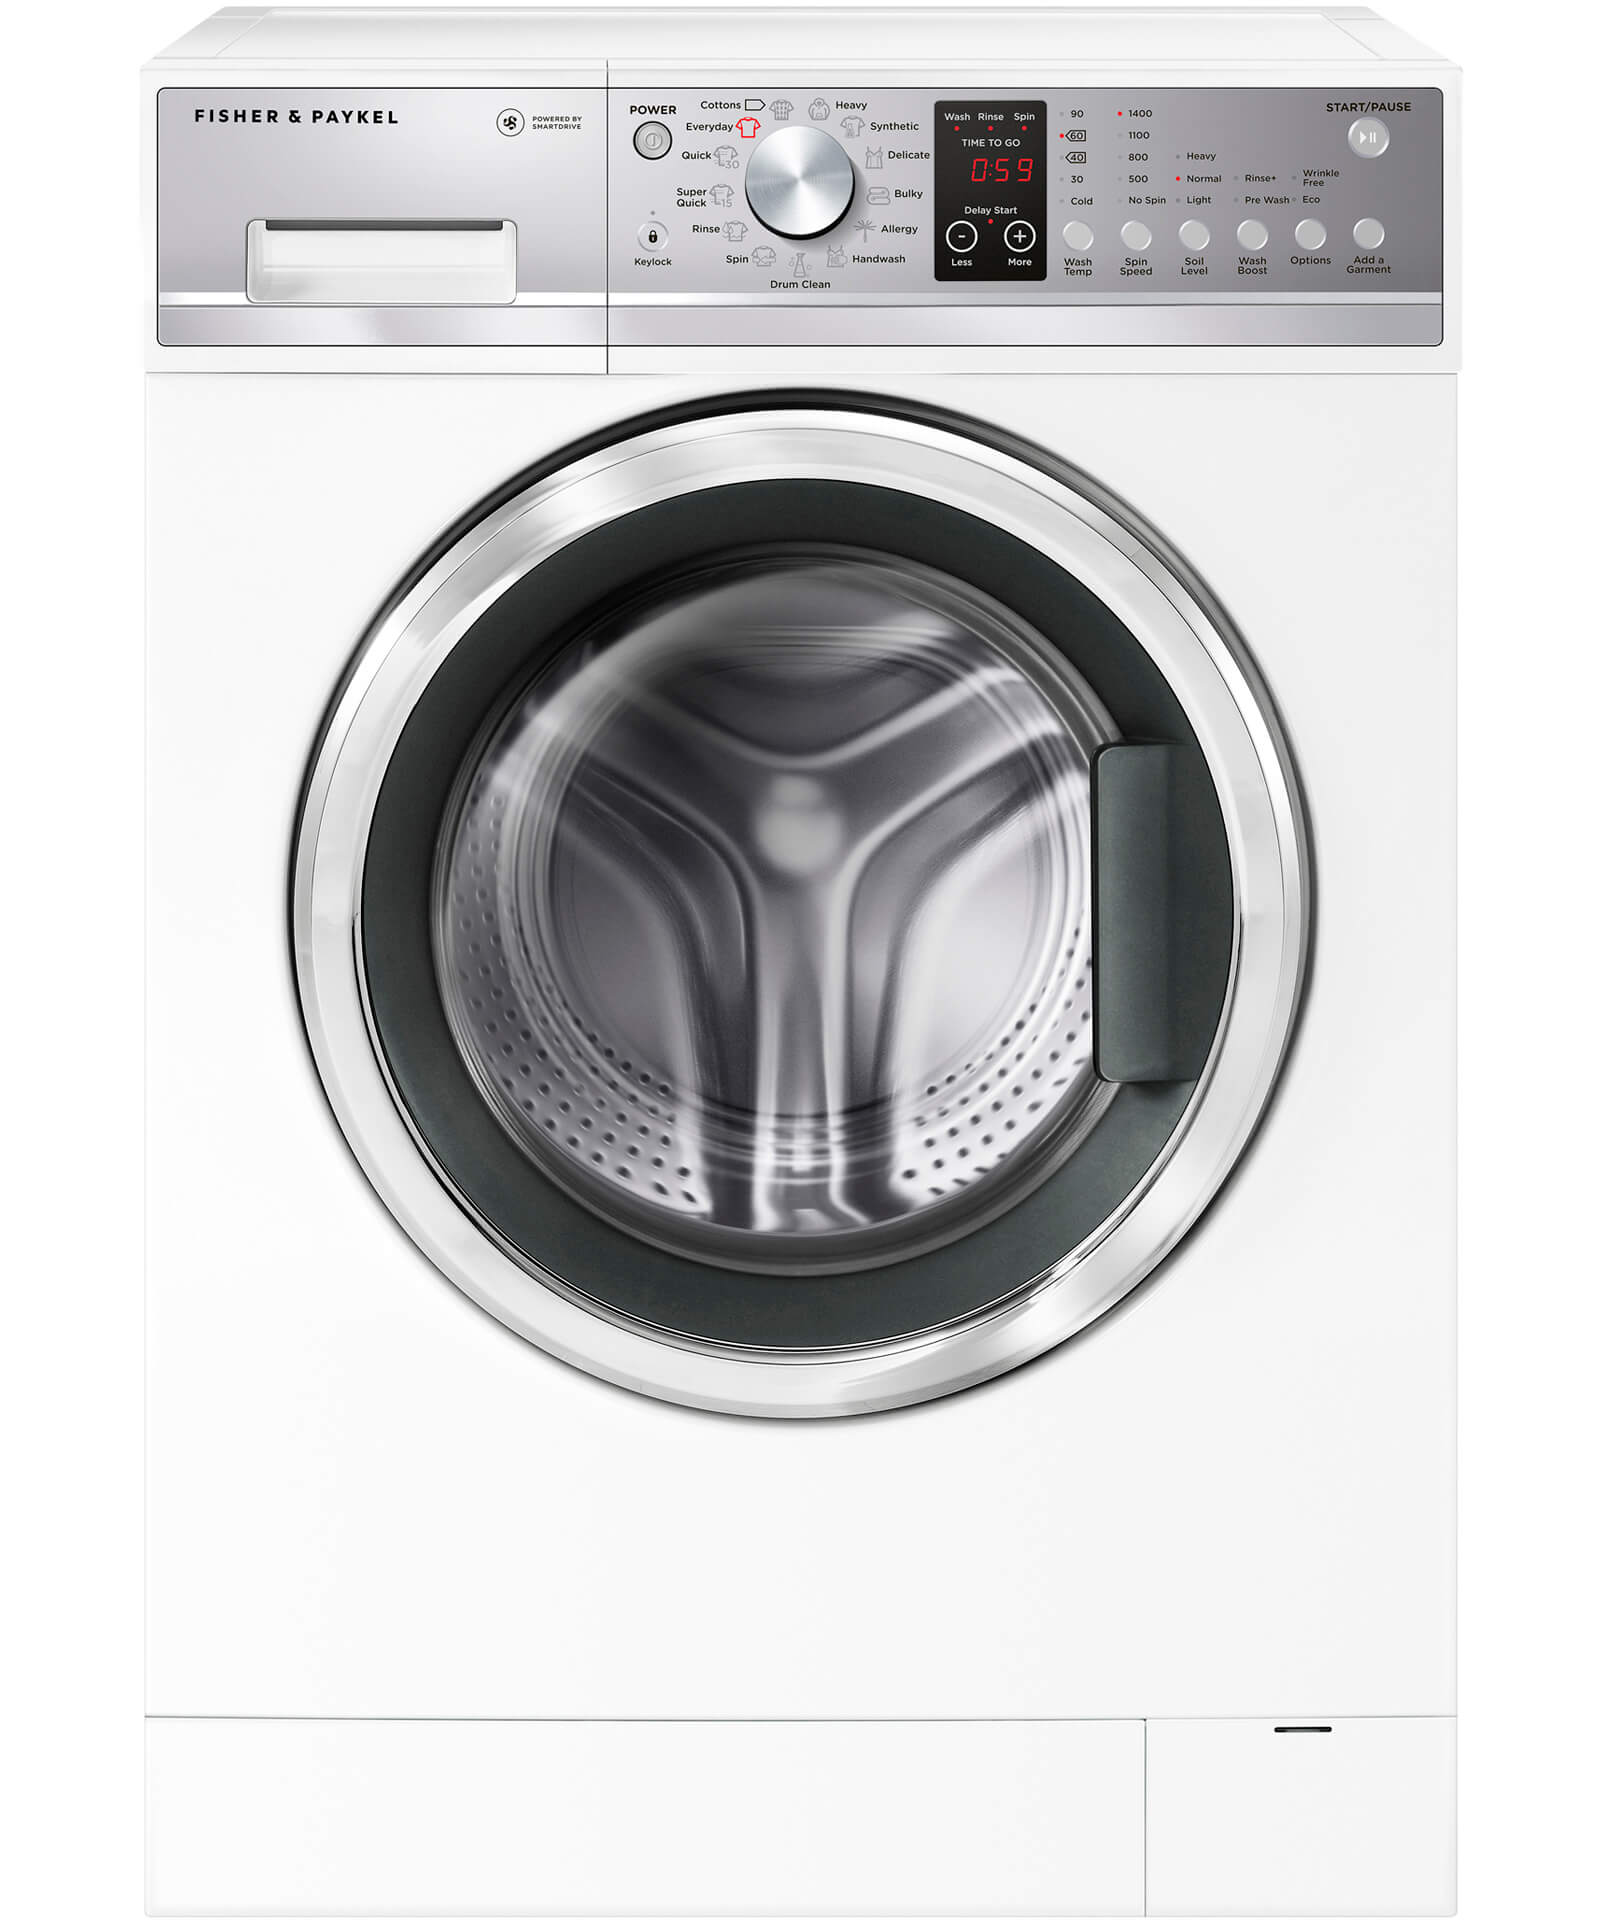 Wm1490p1 9kg Washing Machine With 14 Wash Profiles